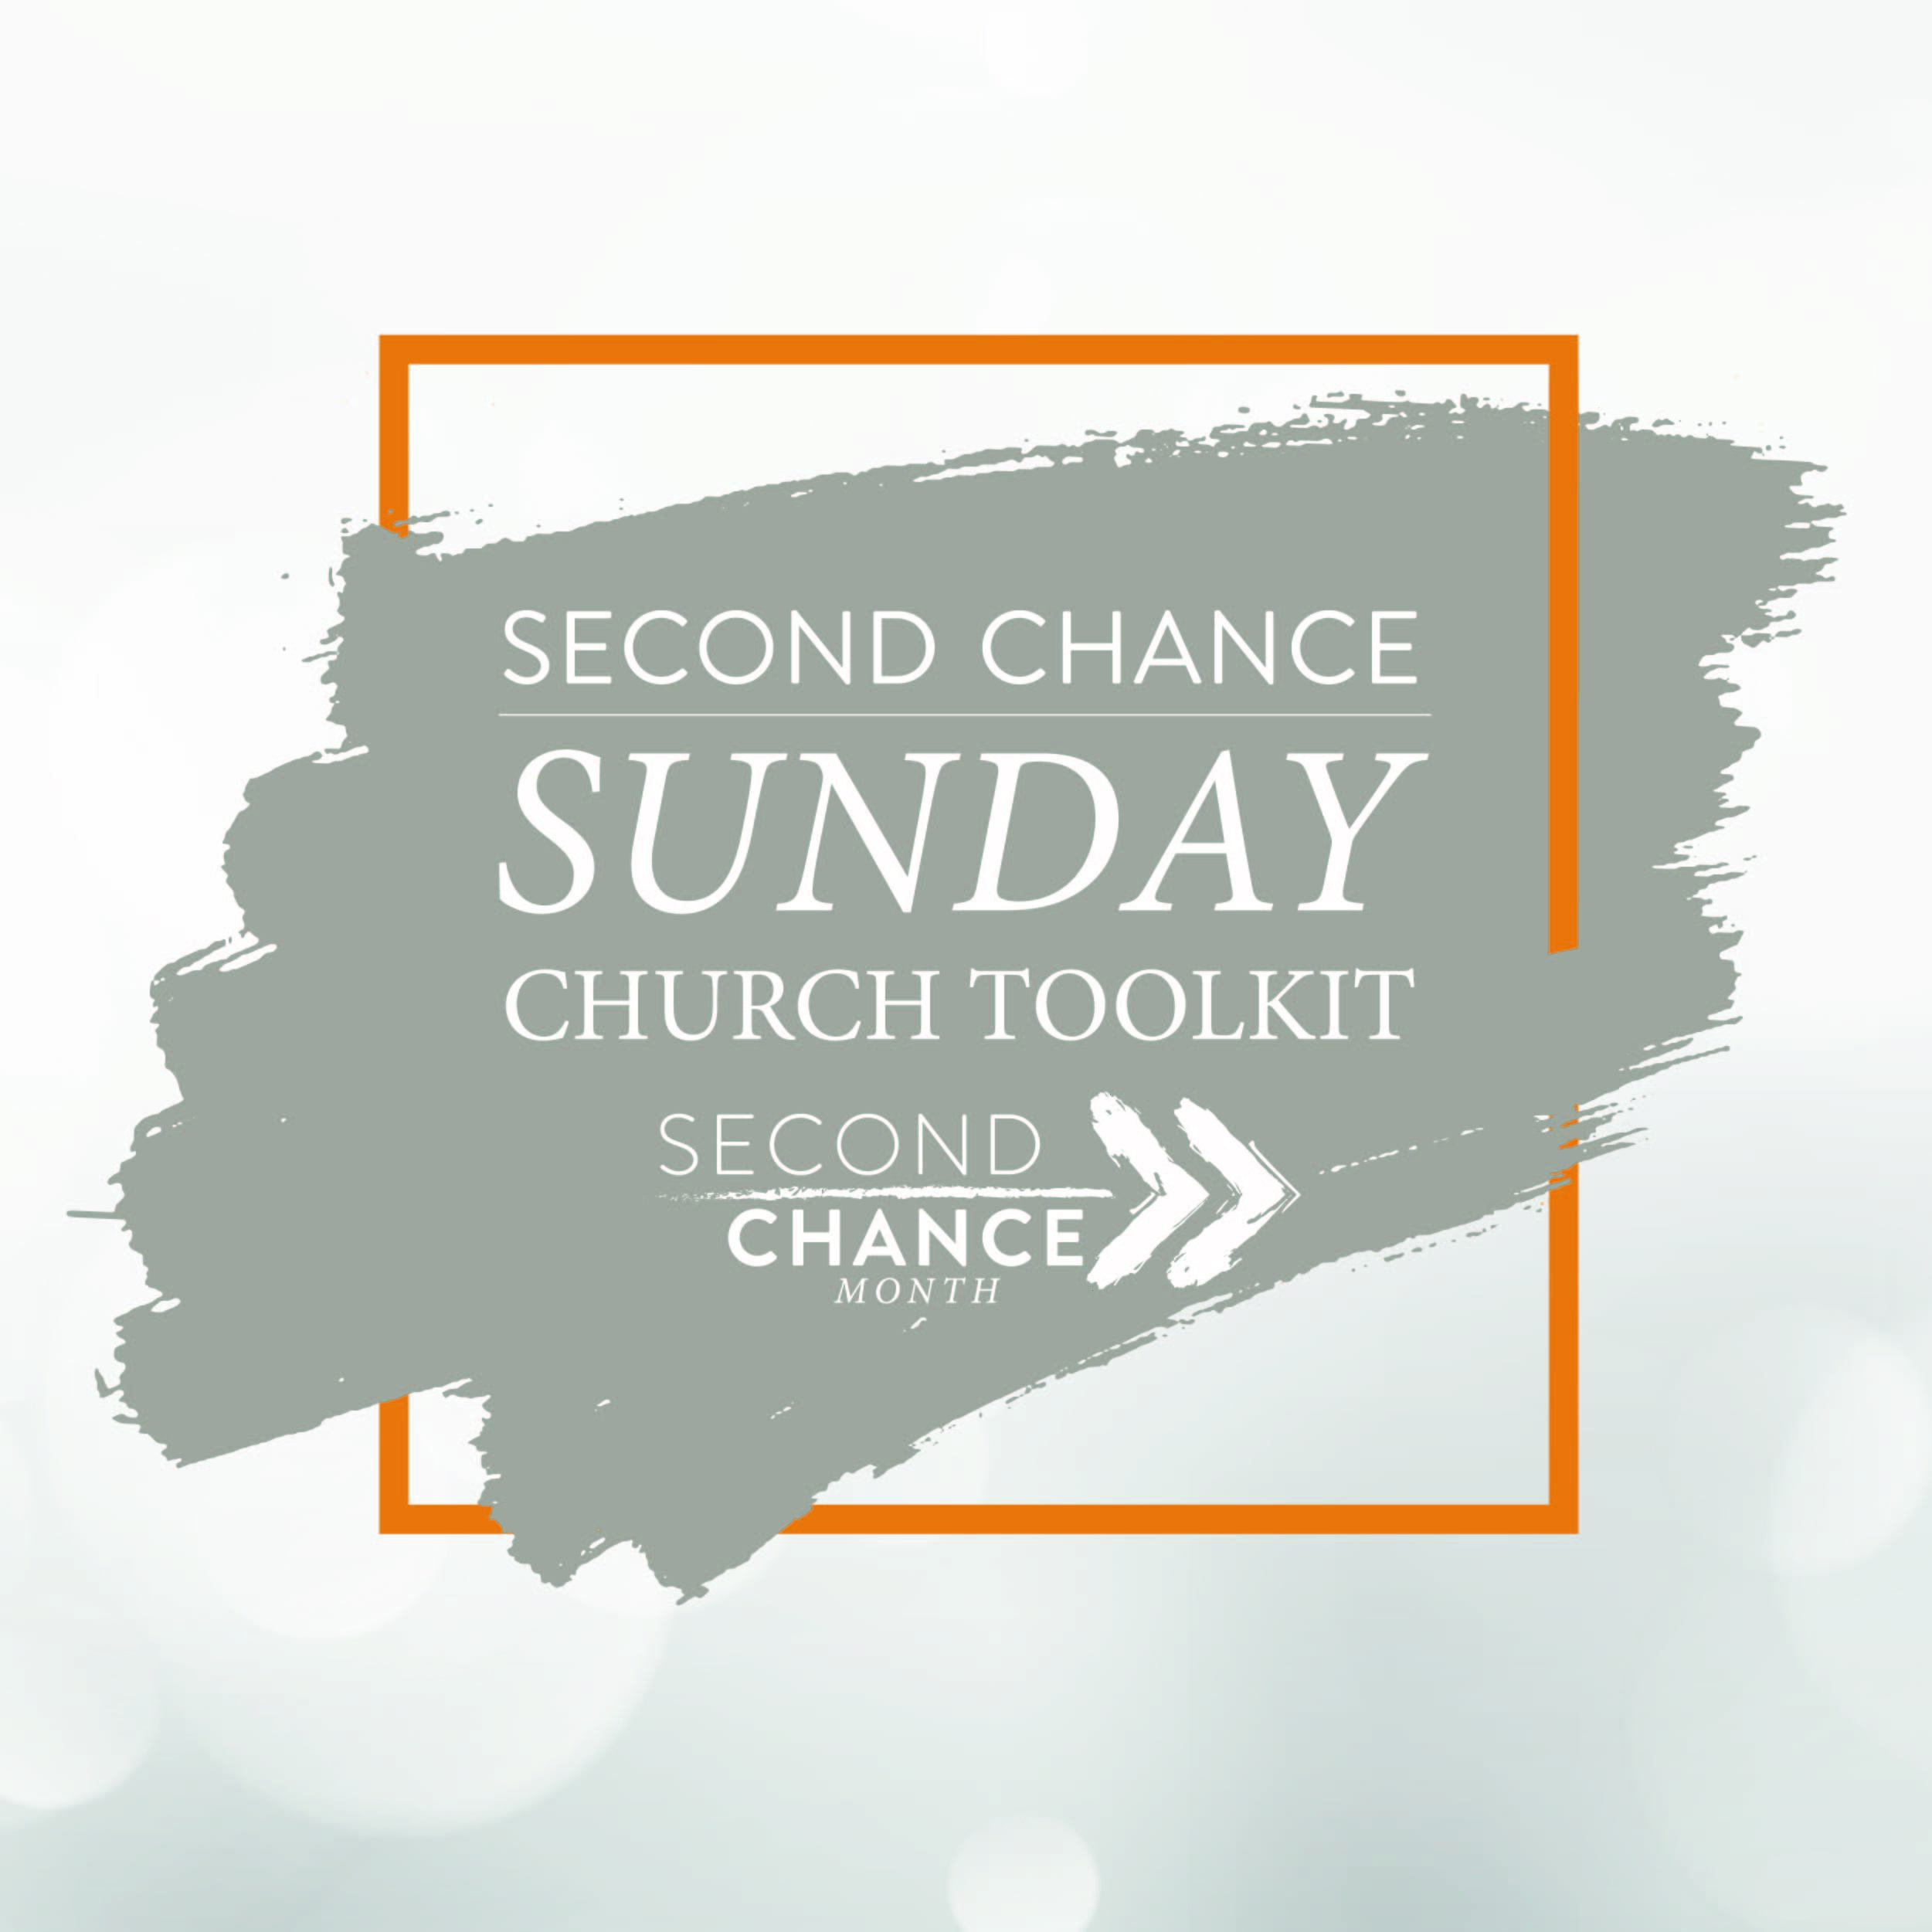 Second Chance Sunday Church Toolkit